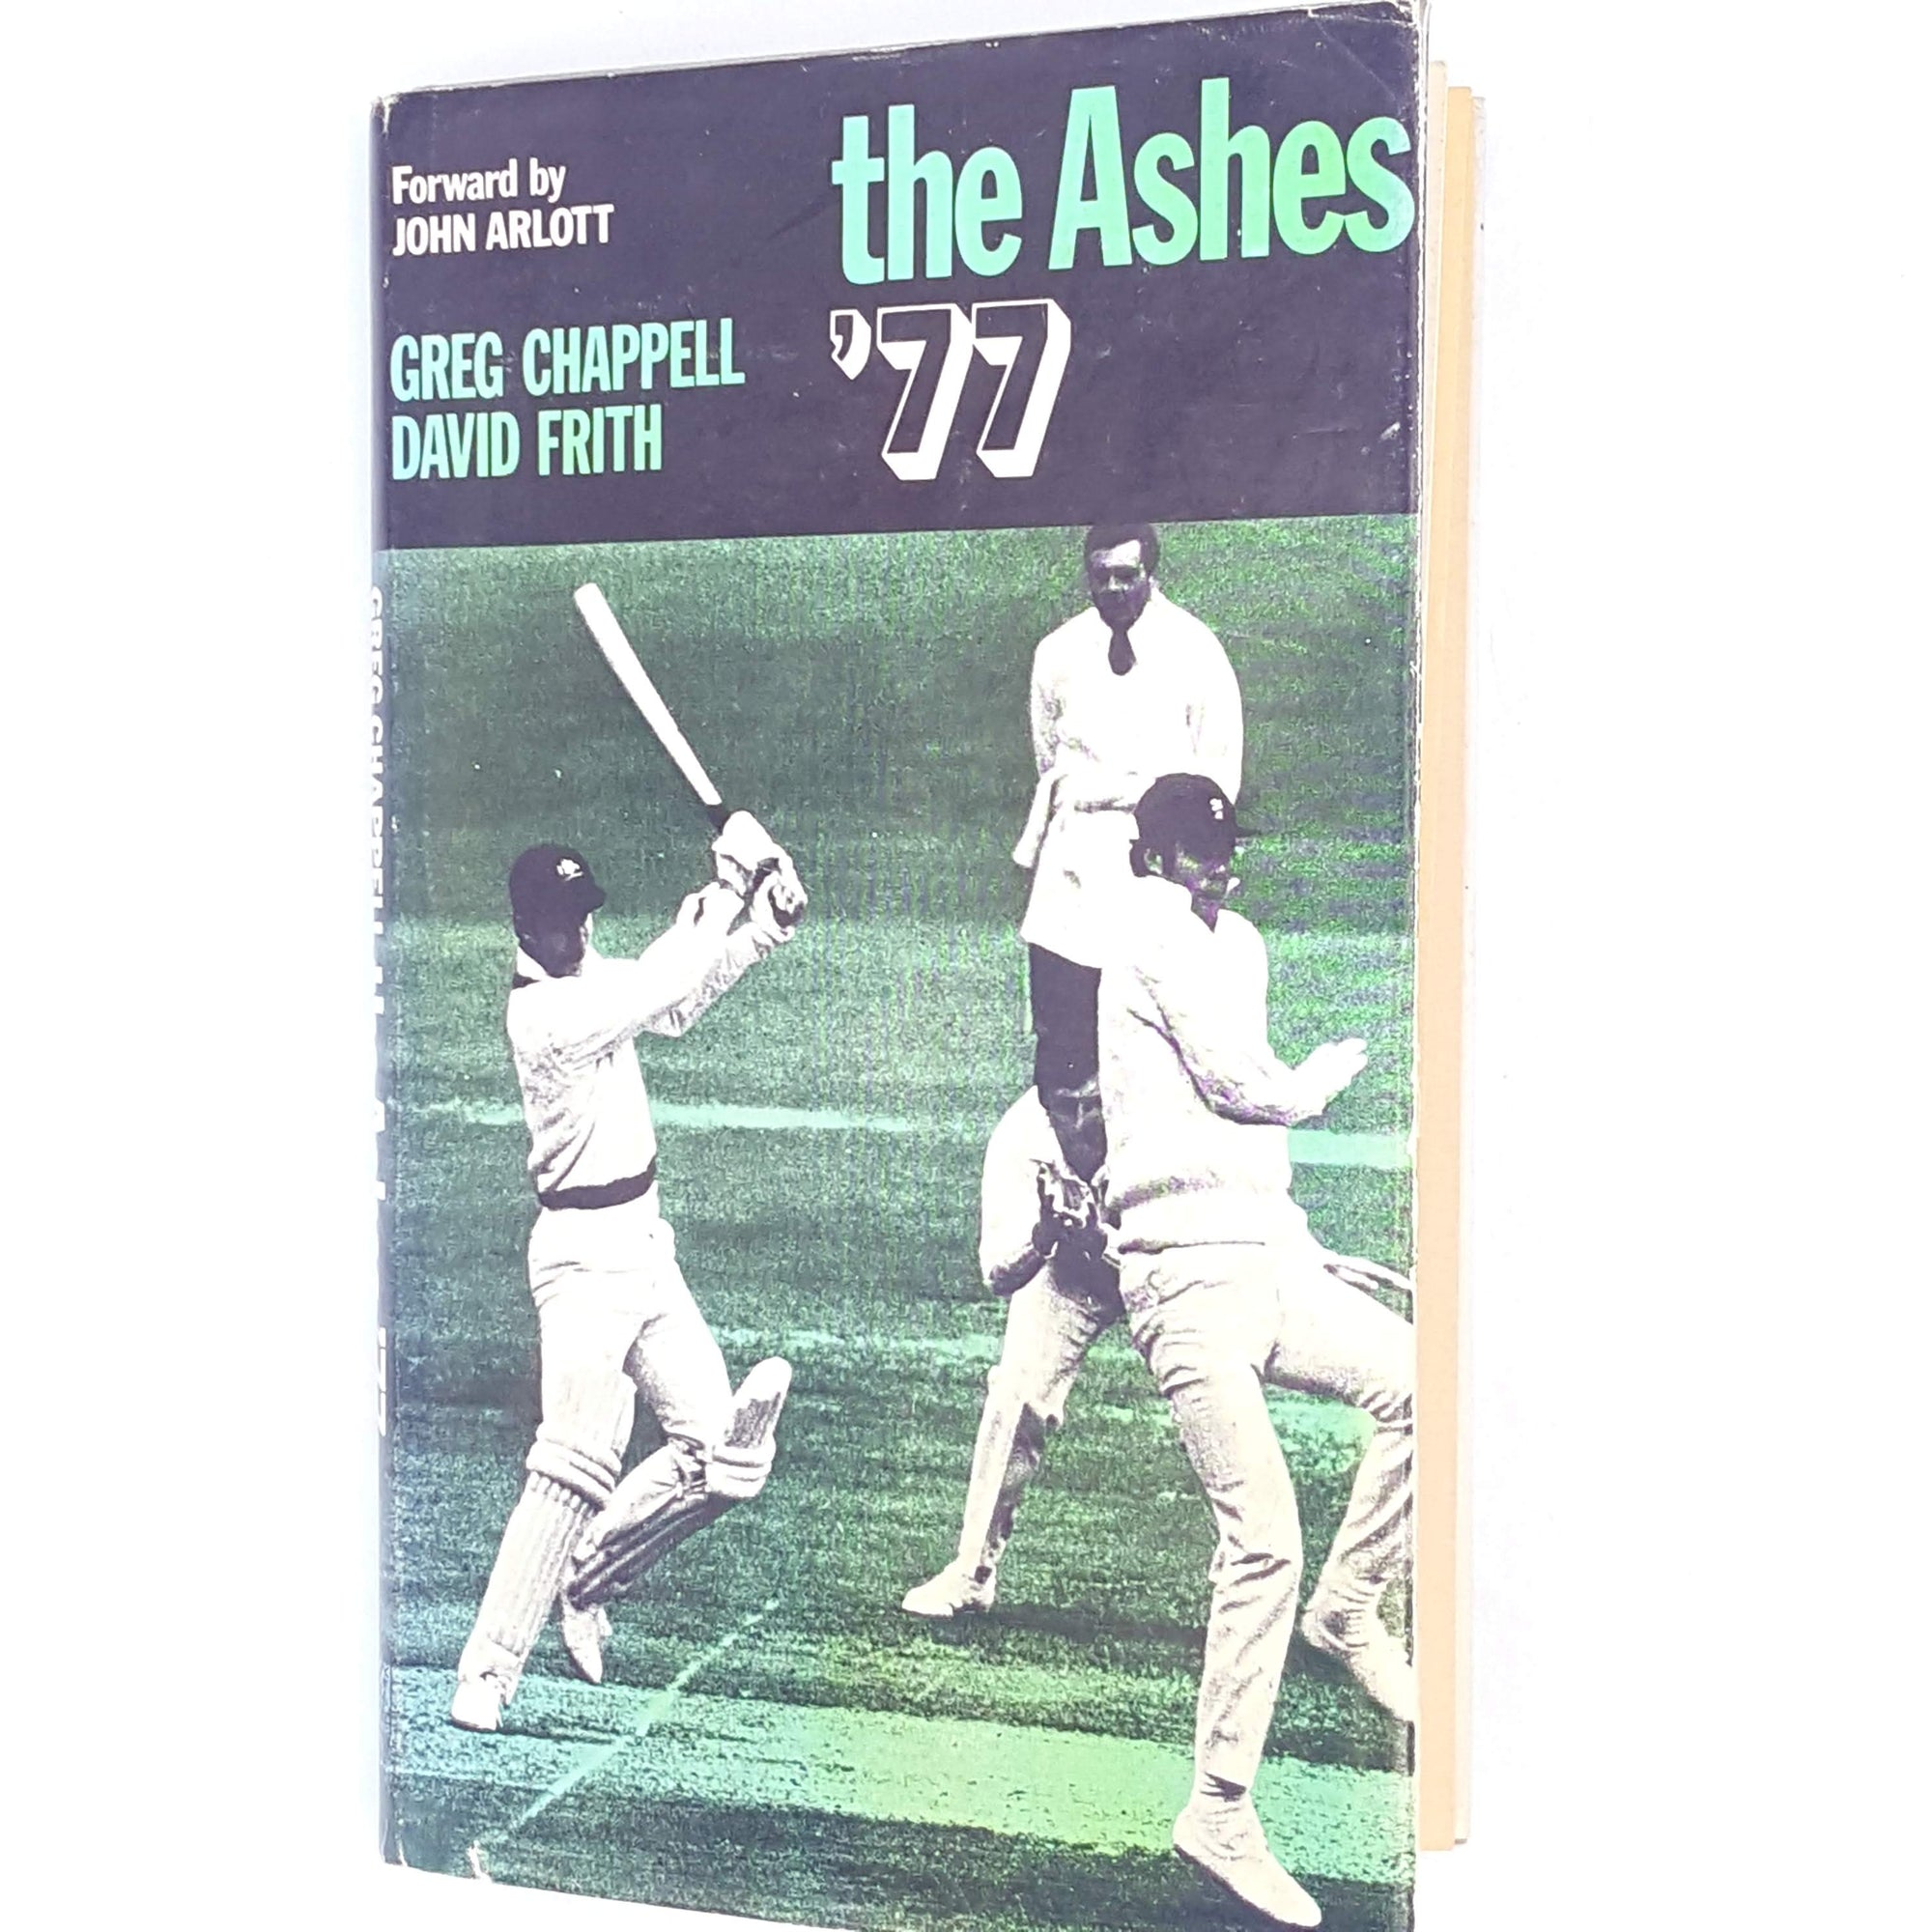 1978-books-thrift-greg-chappell-decorative-cricket-patterned-country-house-library-vintage-old-the-ashes-black-david-frith-sport-classic-antique-